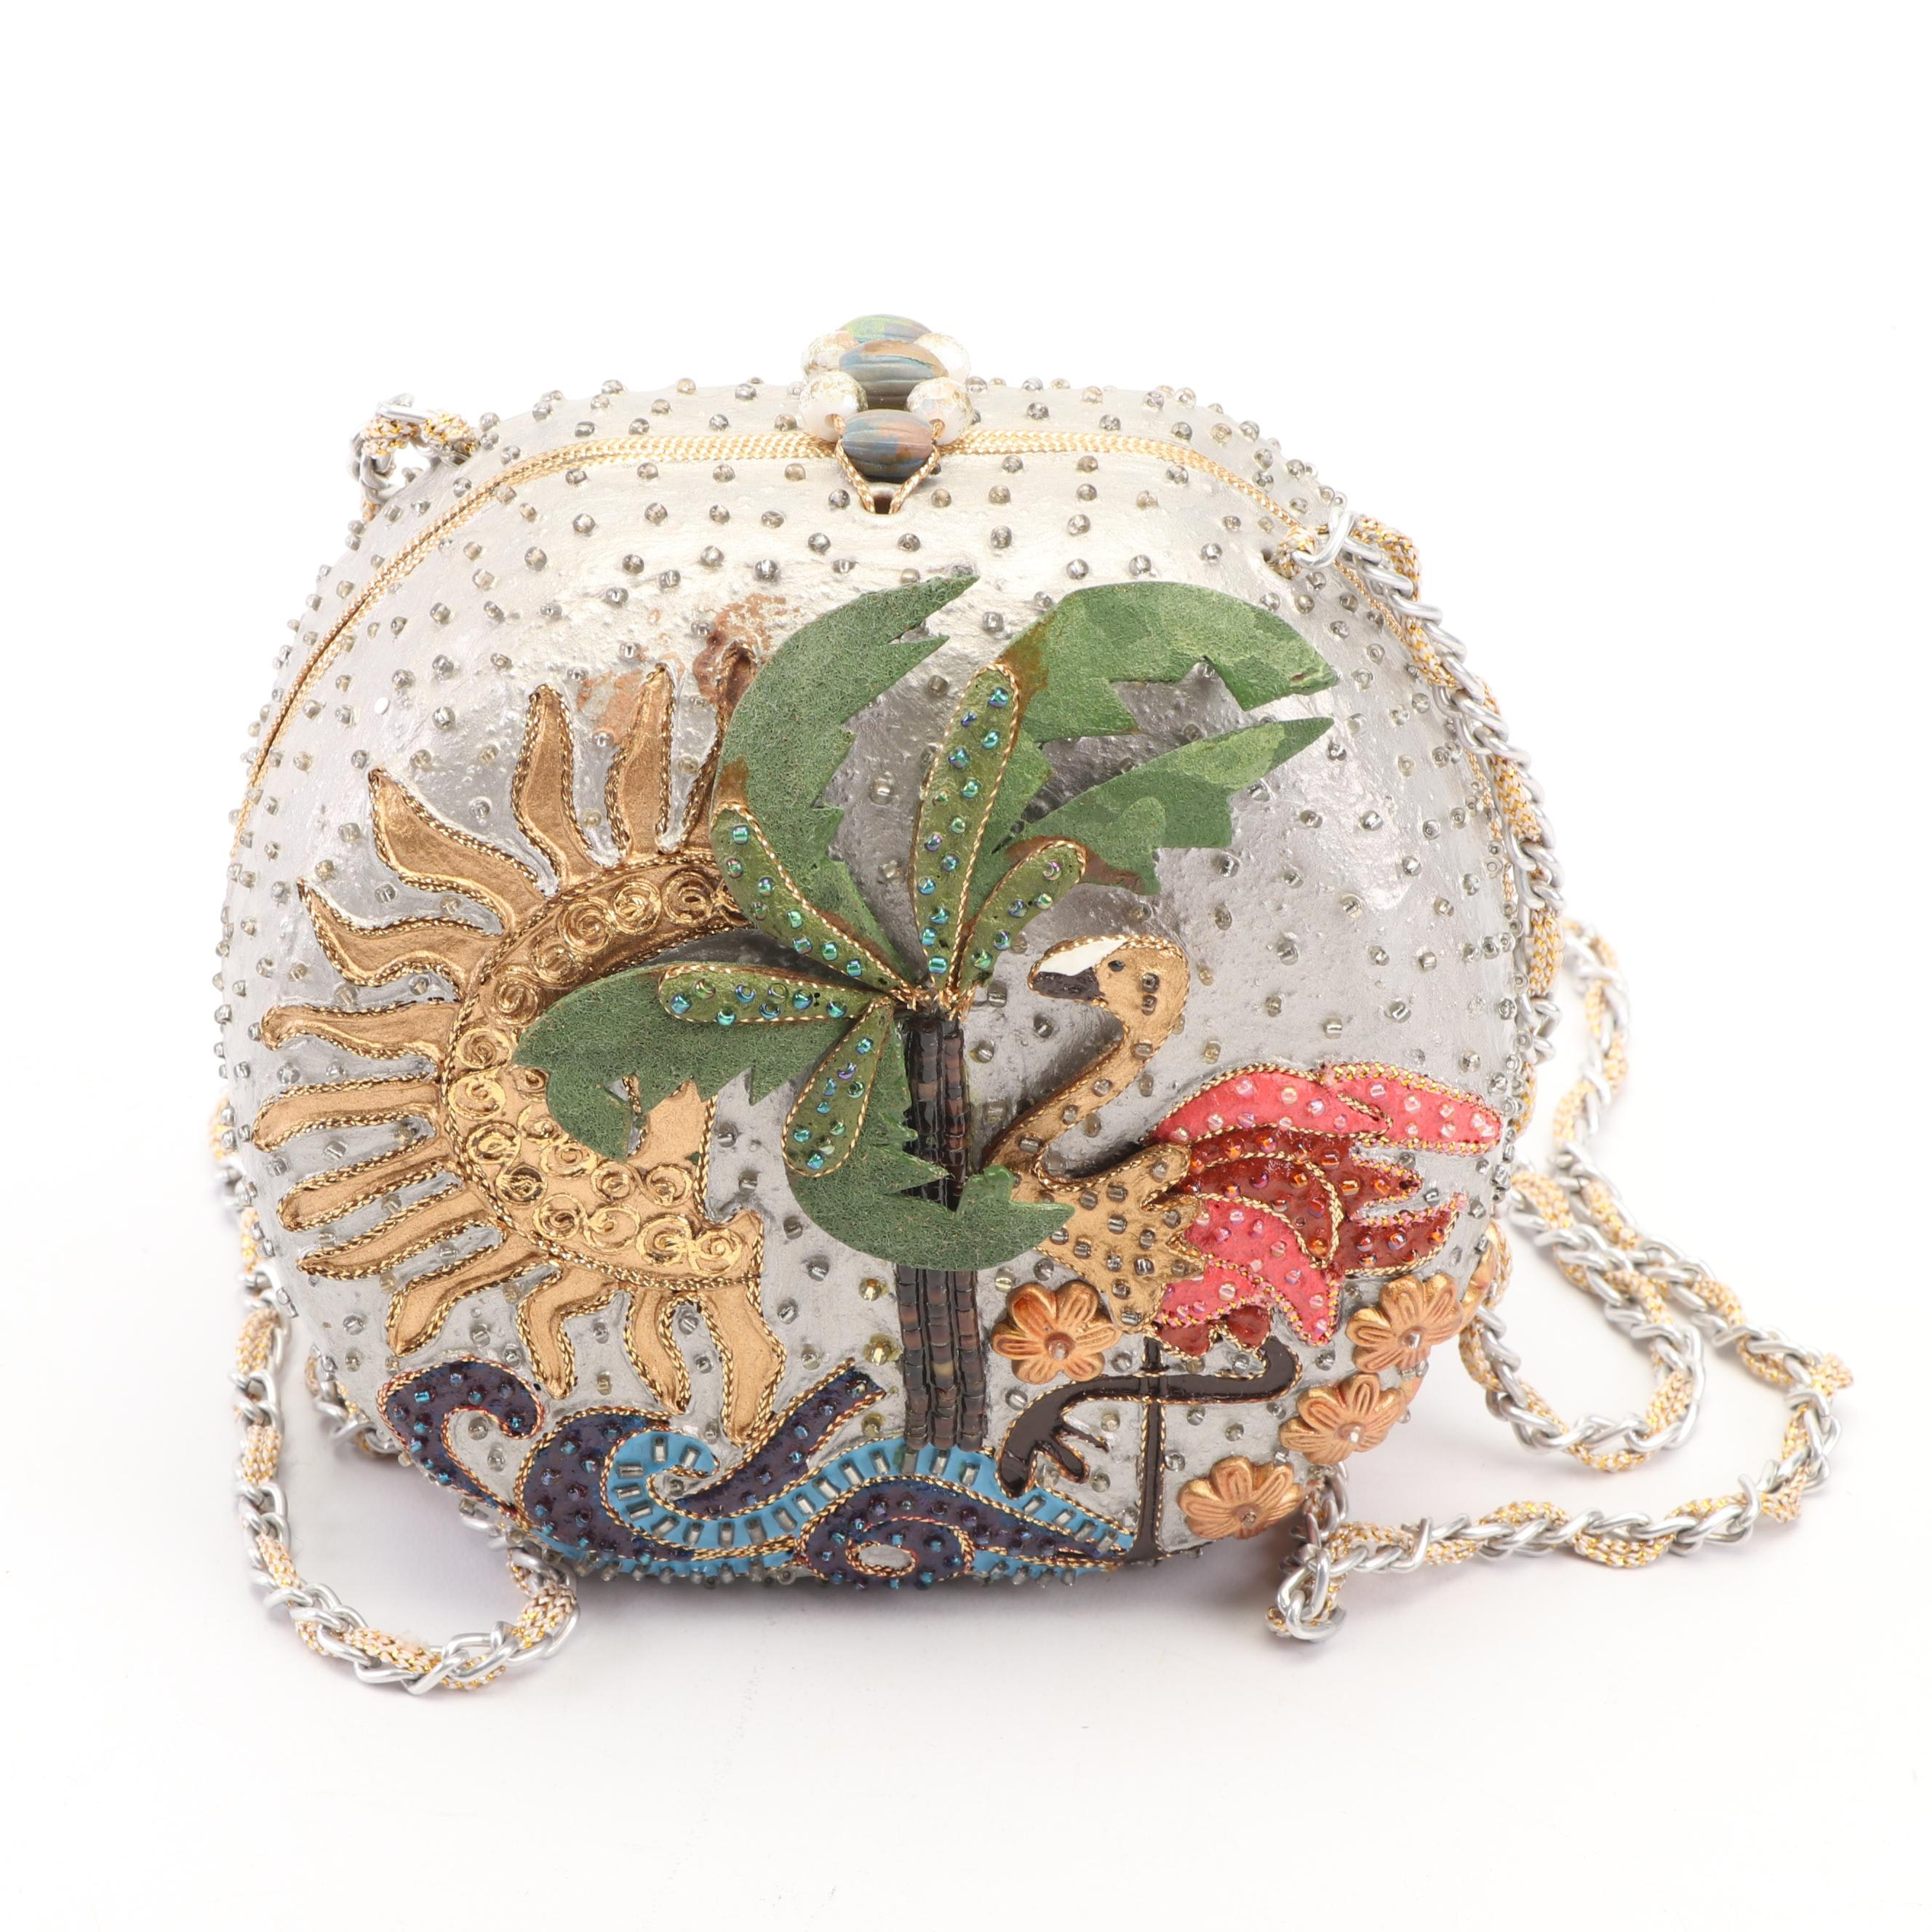 Mary Frances of San Francisco Embellished Palm Tree and Flamingo Clamshell Purse